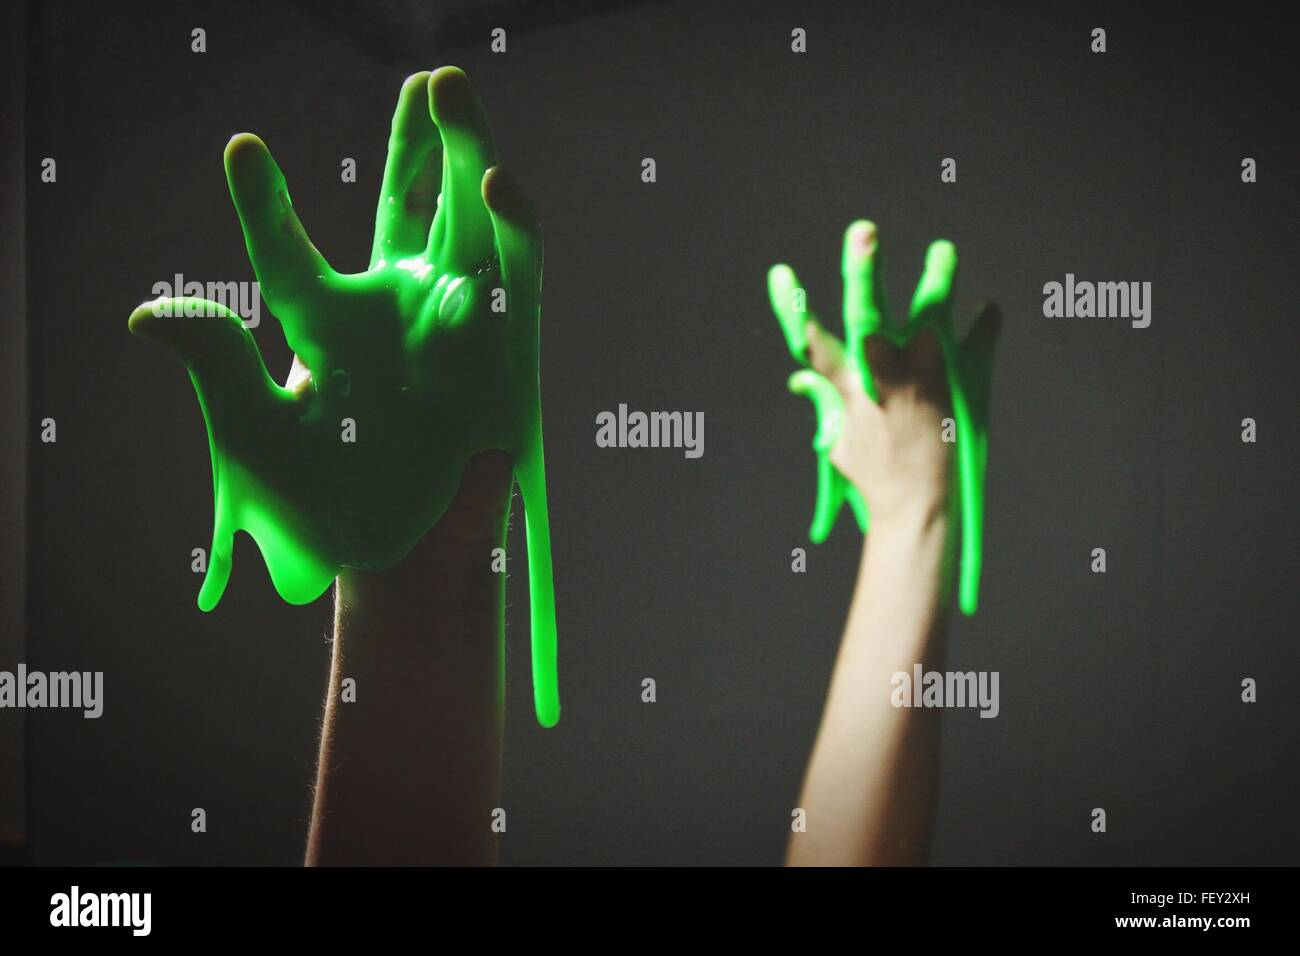 Cropped Hand With Green Slime Against Black Background - Stock Image